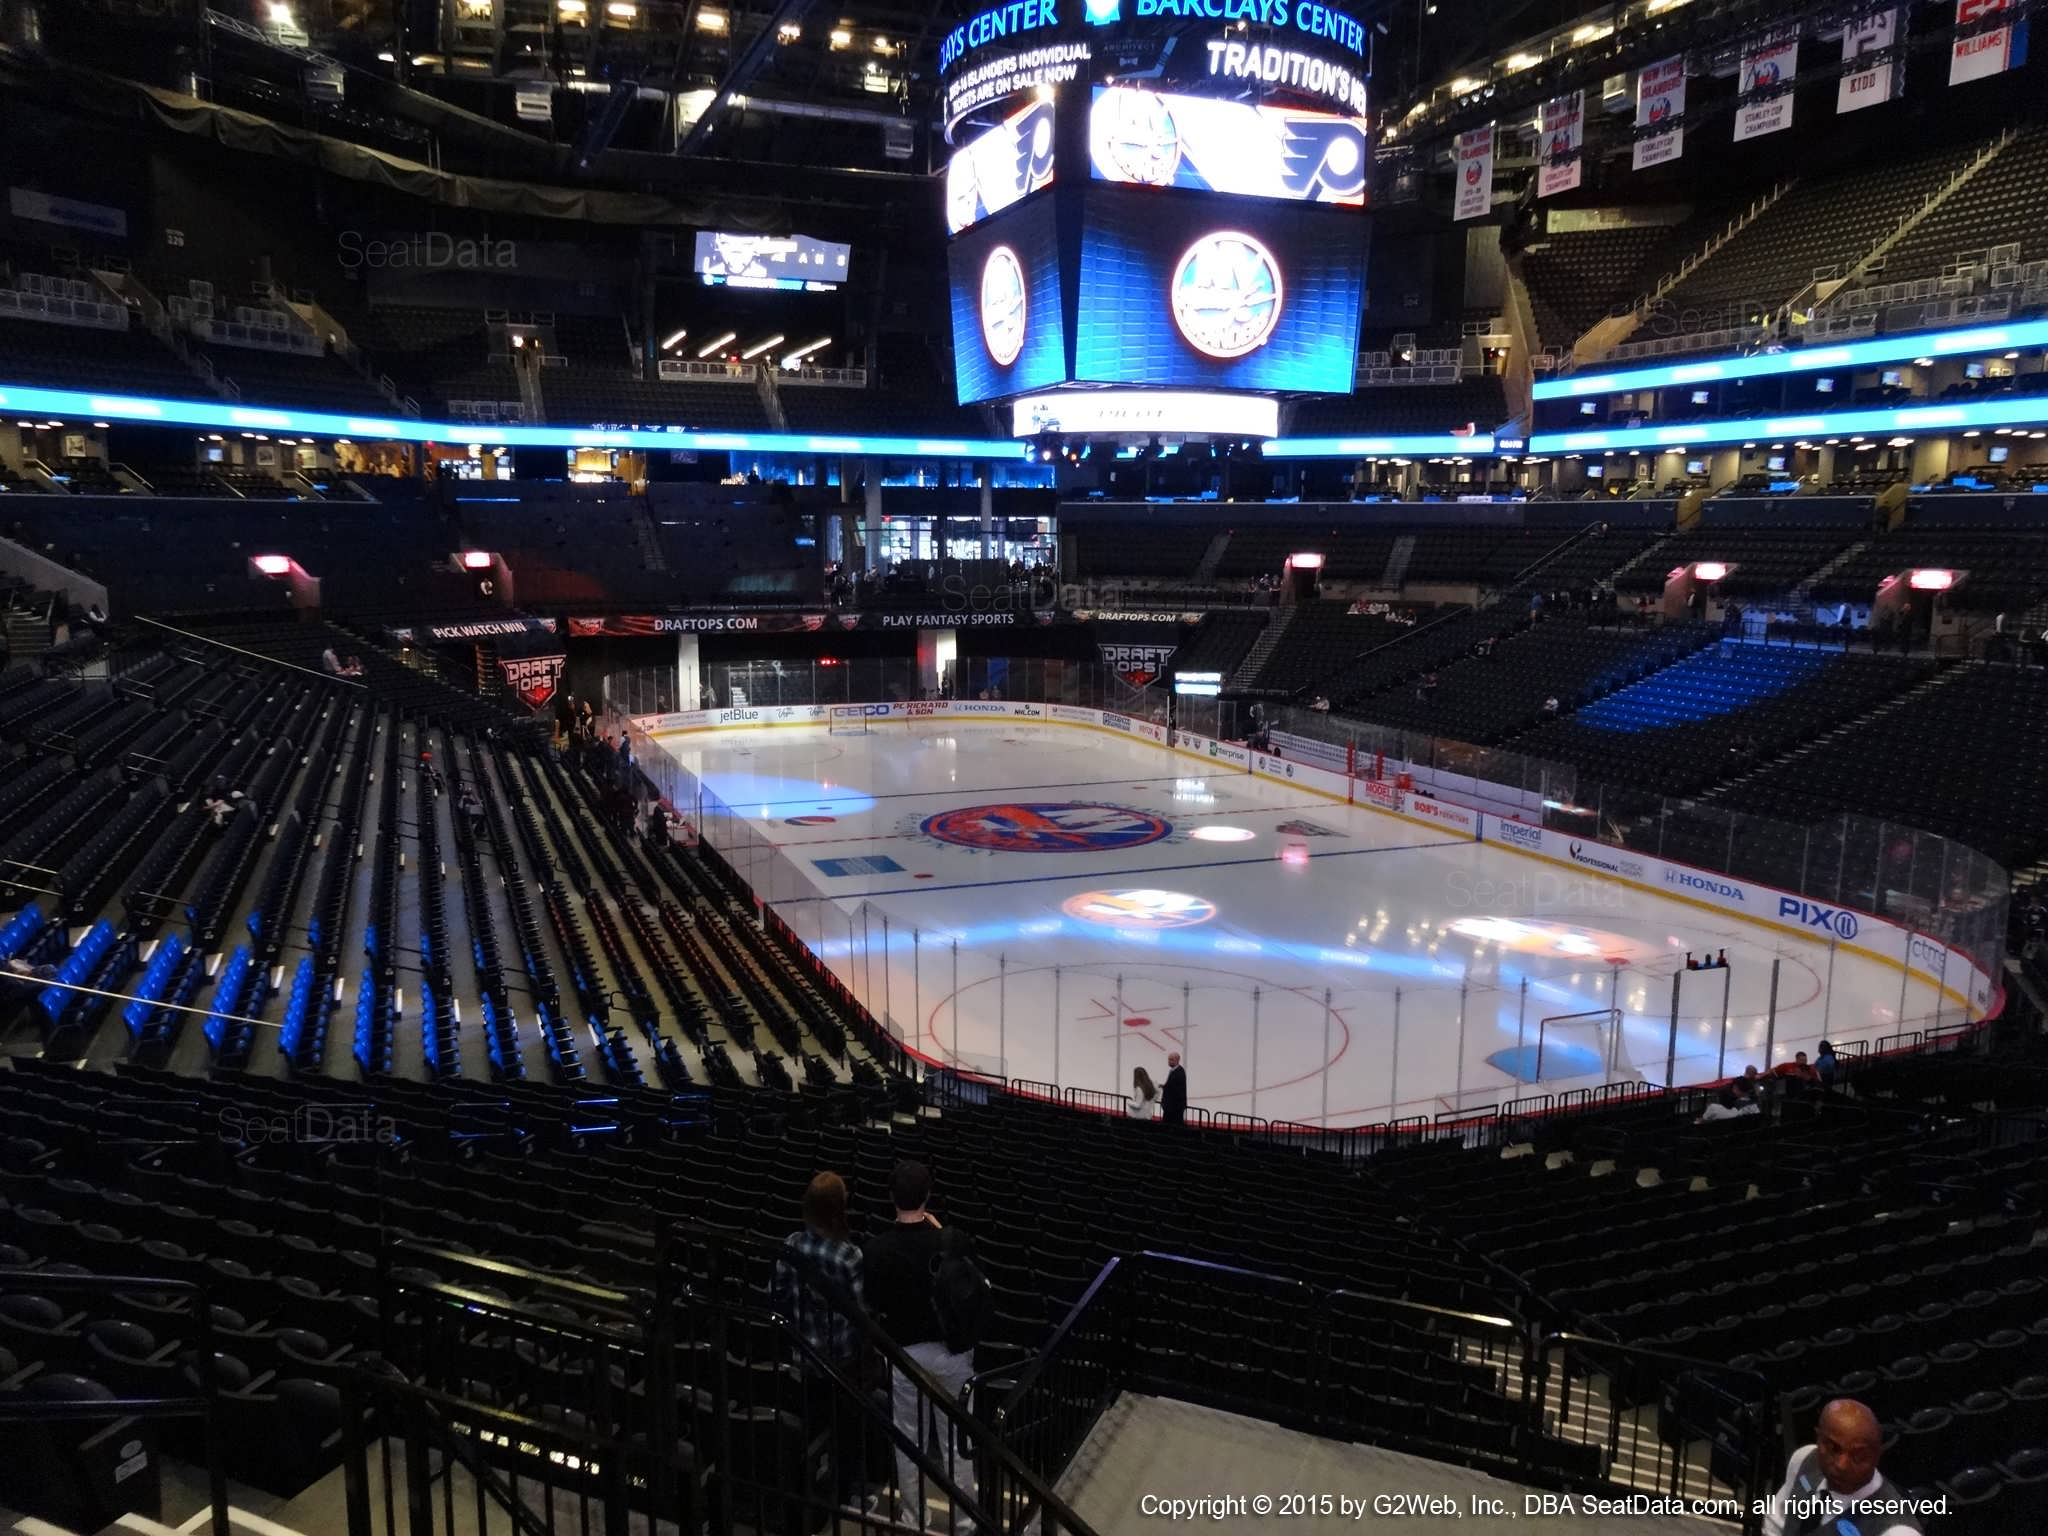 Seat View from Section 118 at the Barclays Center, home of the New York Islanders